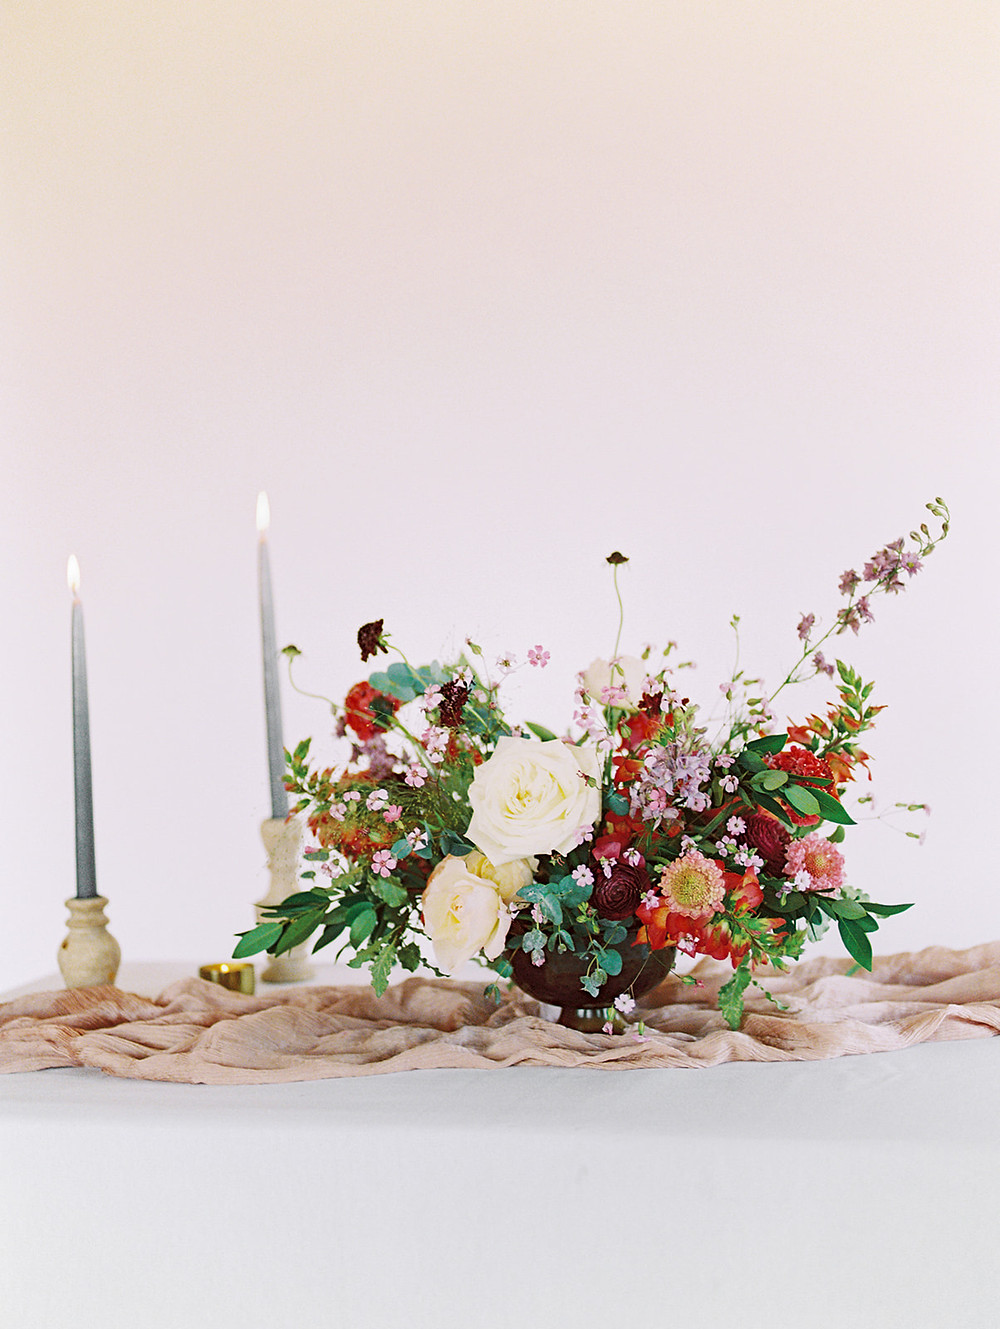 Emma Lea Floral - A La Carte Shop - Online Order Wedding Flowers - Tara Bielecki Photography - Affordable, Simplified, Beautiful Arrangements - Footed Centerpiece - Berries & Cream